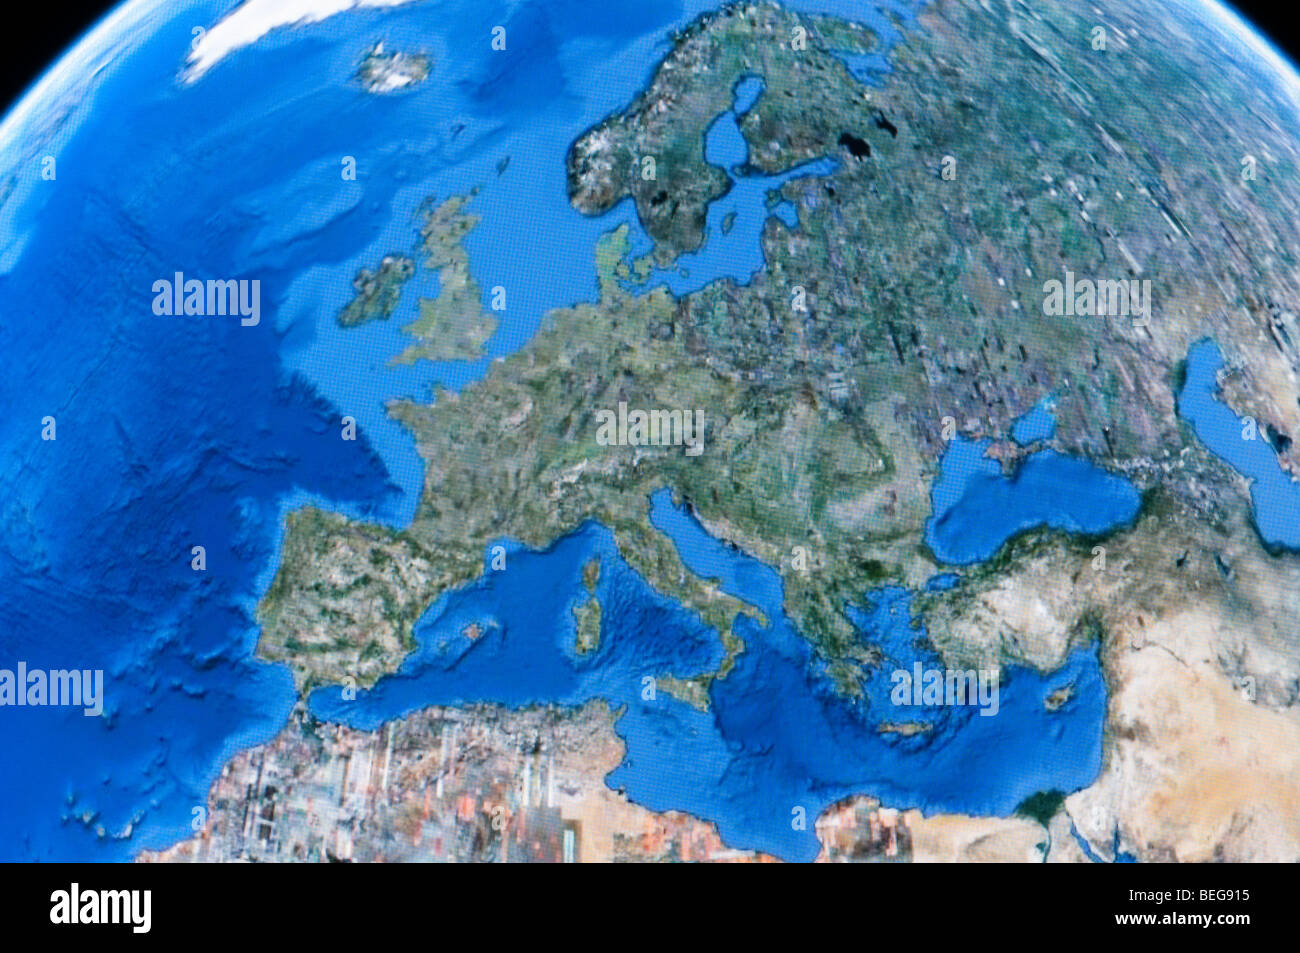 Europe as seen on Google Earth Stock Photo: 26173873 - Alamy on latest map of europe, google road map europe, google switzerland europe, google maps eastern europe, google maps street view, google world maps with countries, home map of europe, easy to read map of europe, war map of europe, full map of europe, google search map of europe, london on map of europe, garmin map of europe, old world map of europe, largest cave in europe, bern on map of europe, detailed map of europe, size of europe, google maps europe slovenia, google map of western europe,